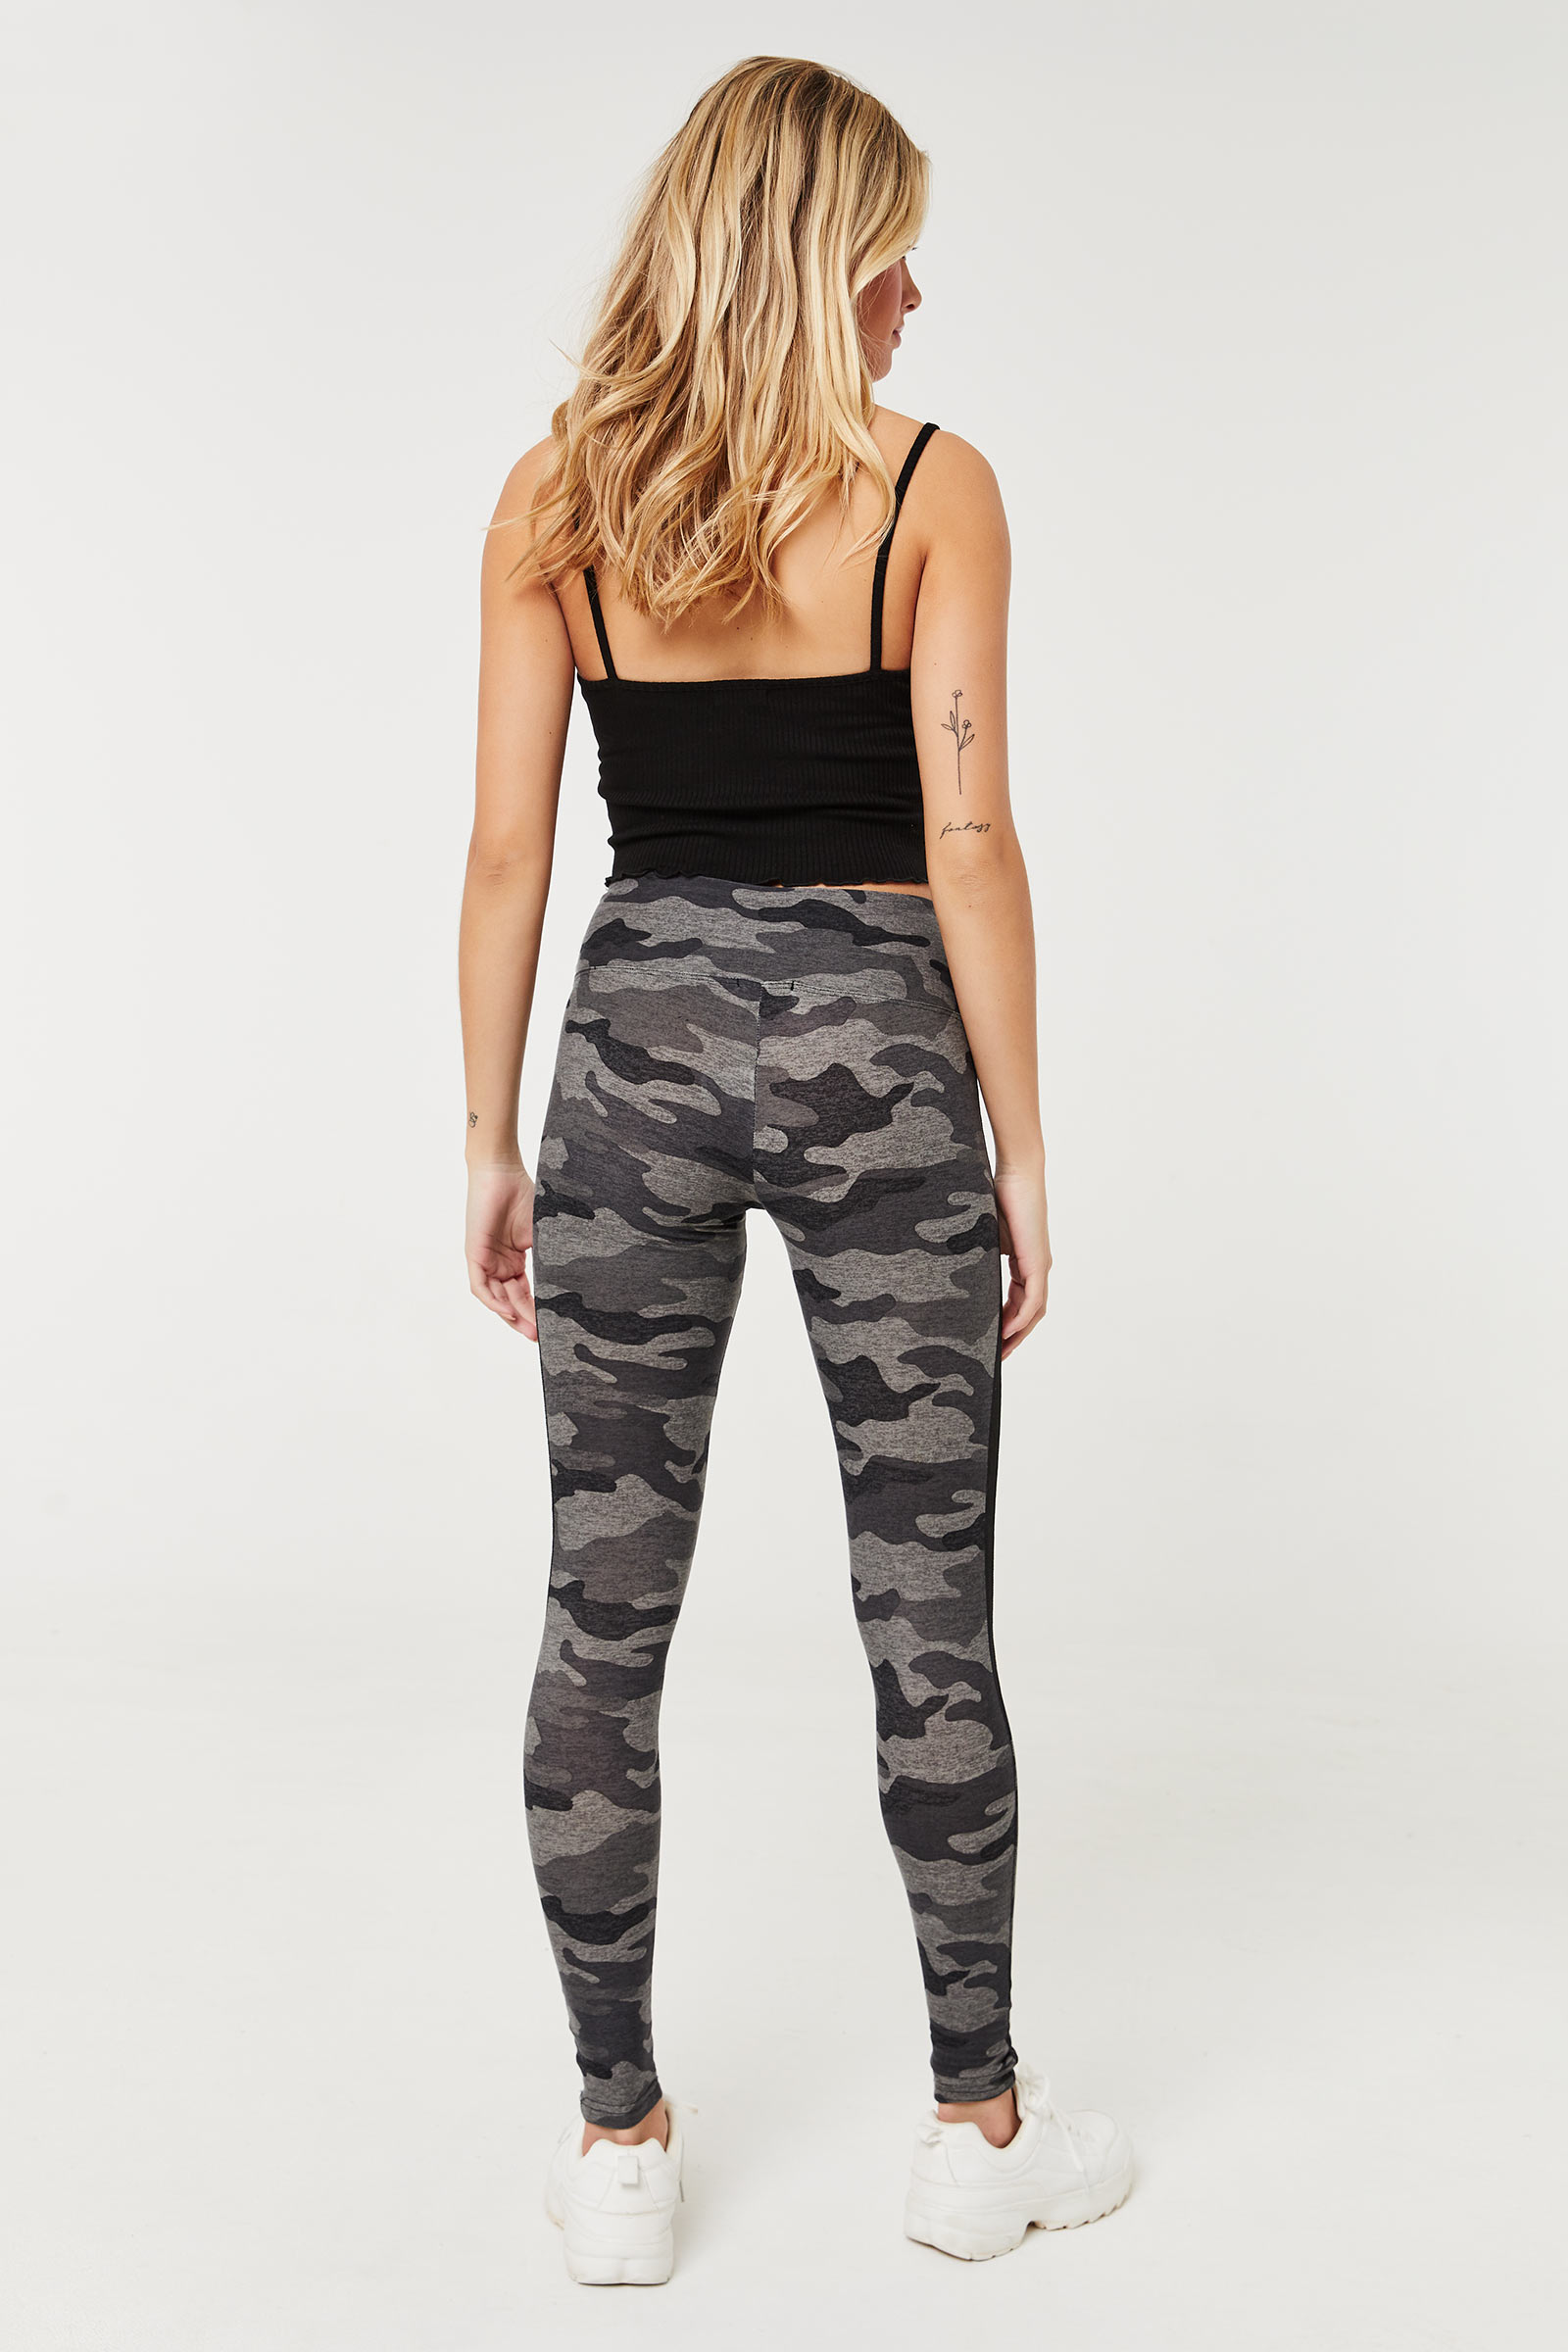 Camo Leggings with Mesh Inserts